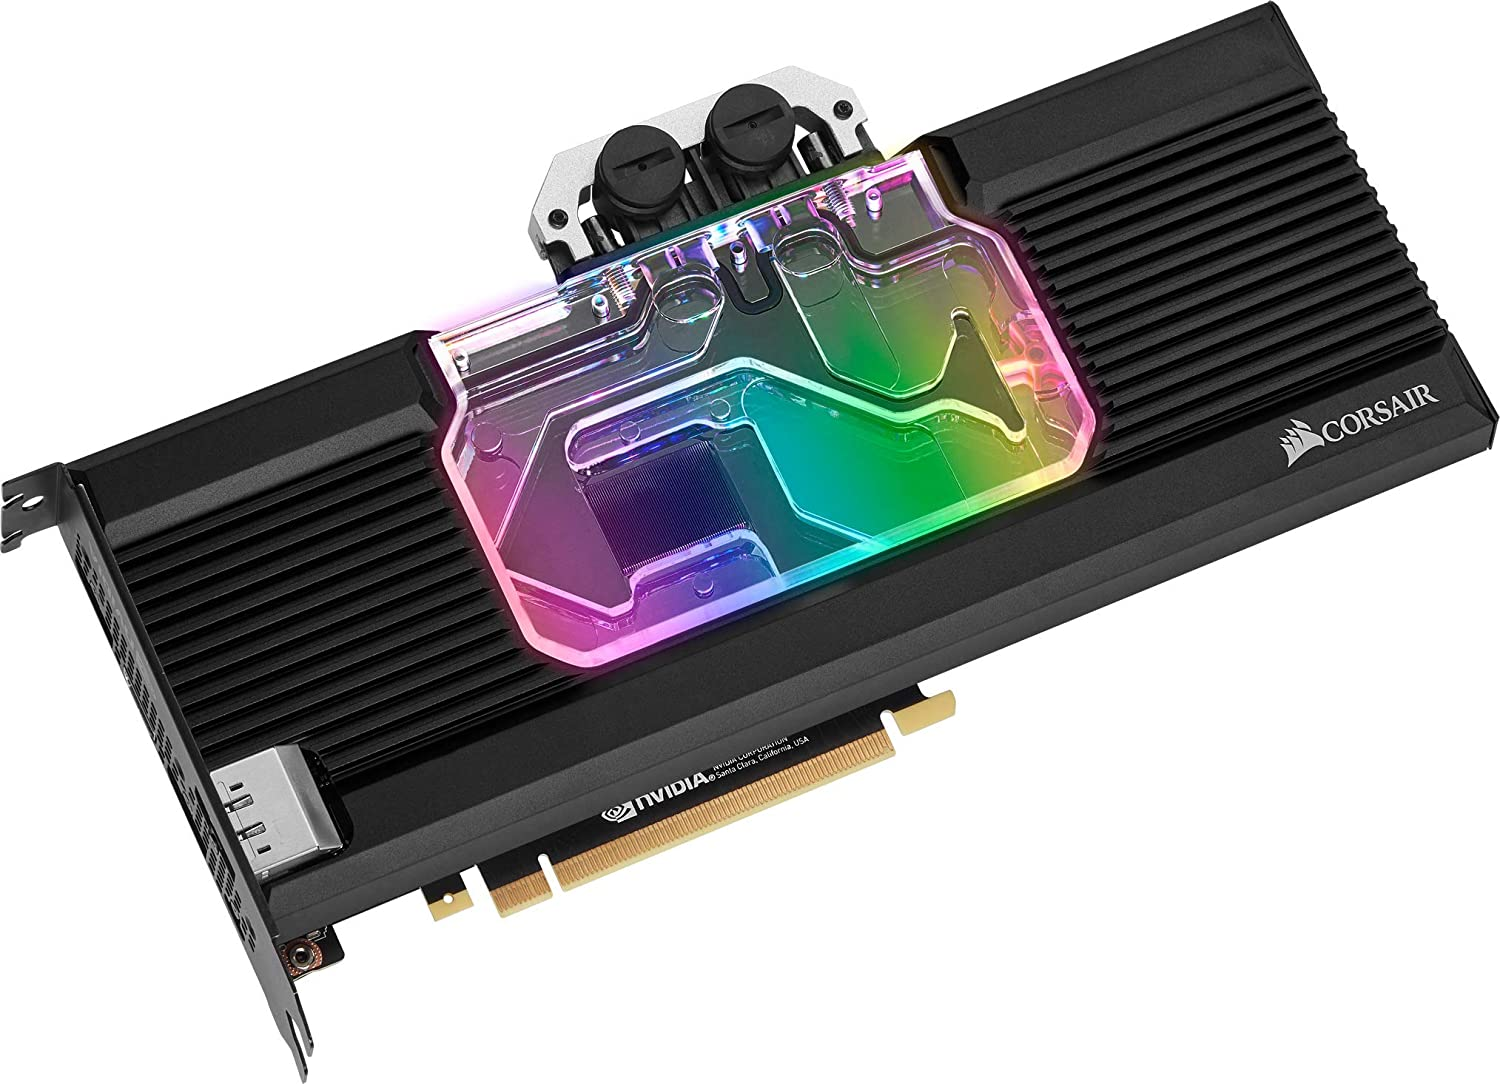 Corsair Hydro X Series XG7 RGB 20-Series GPU Water Block